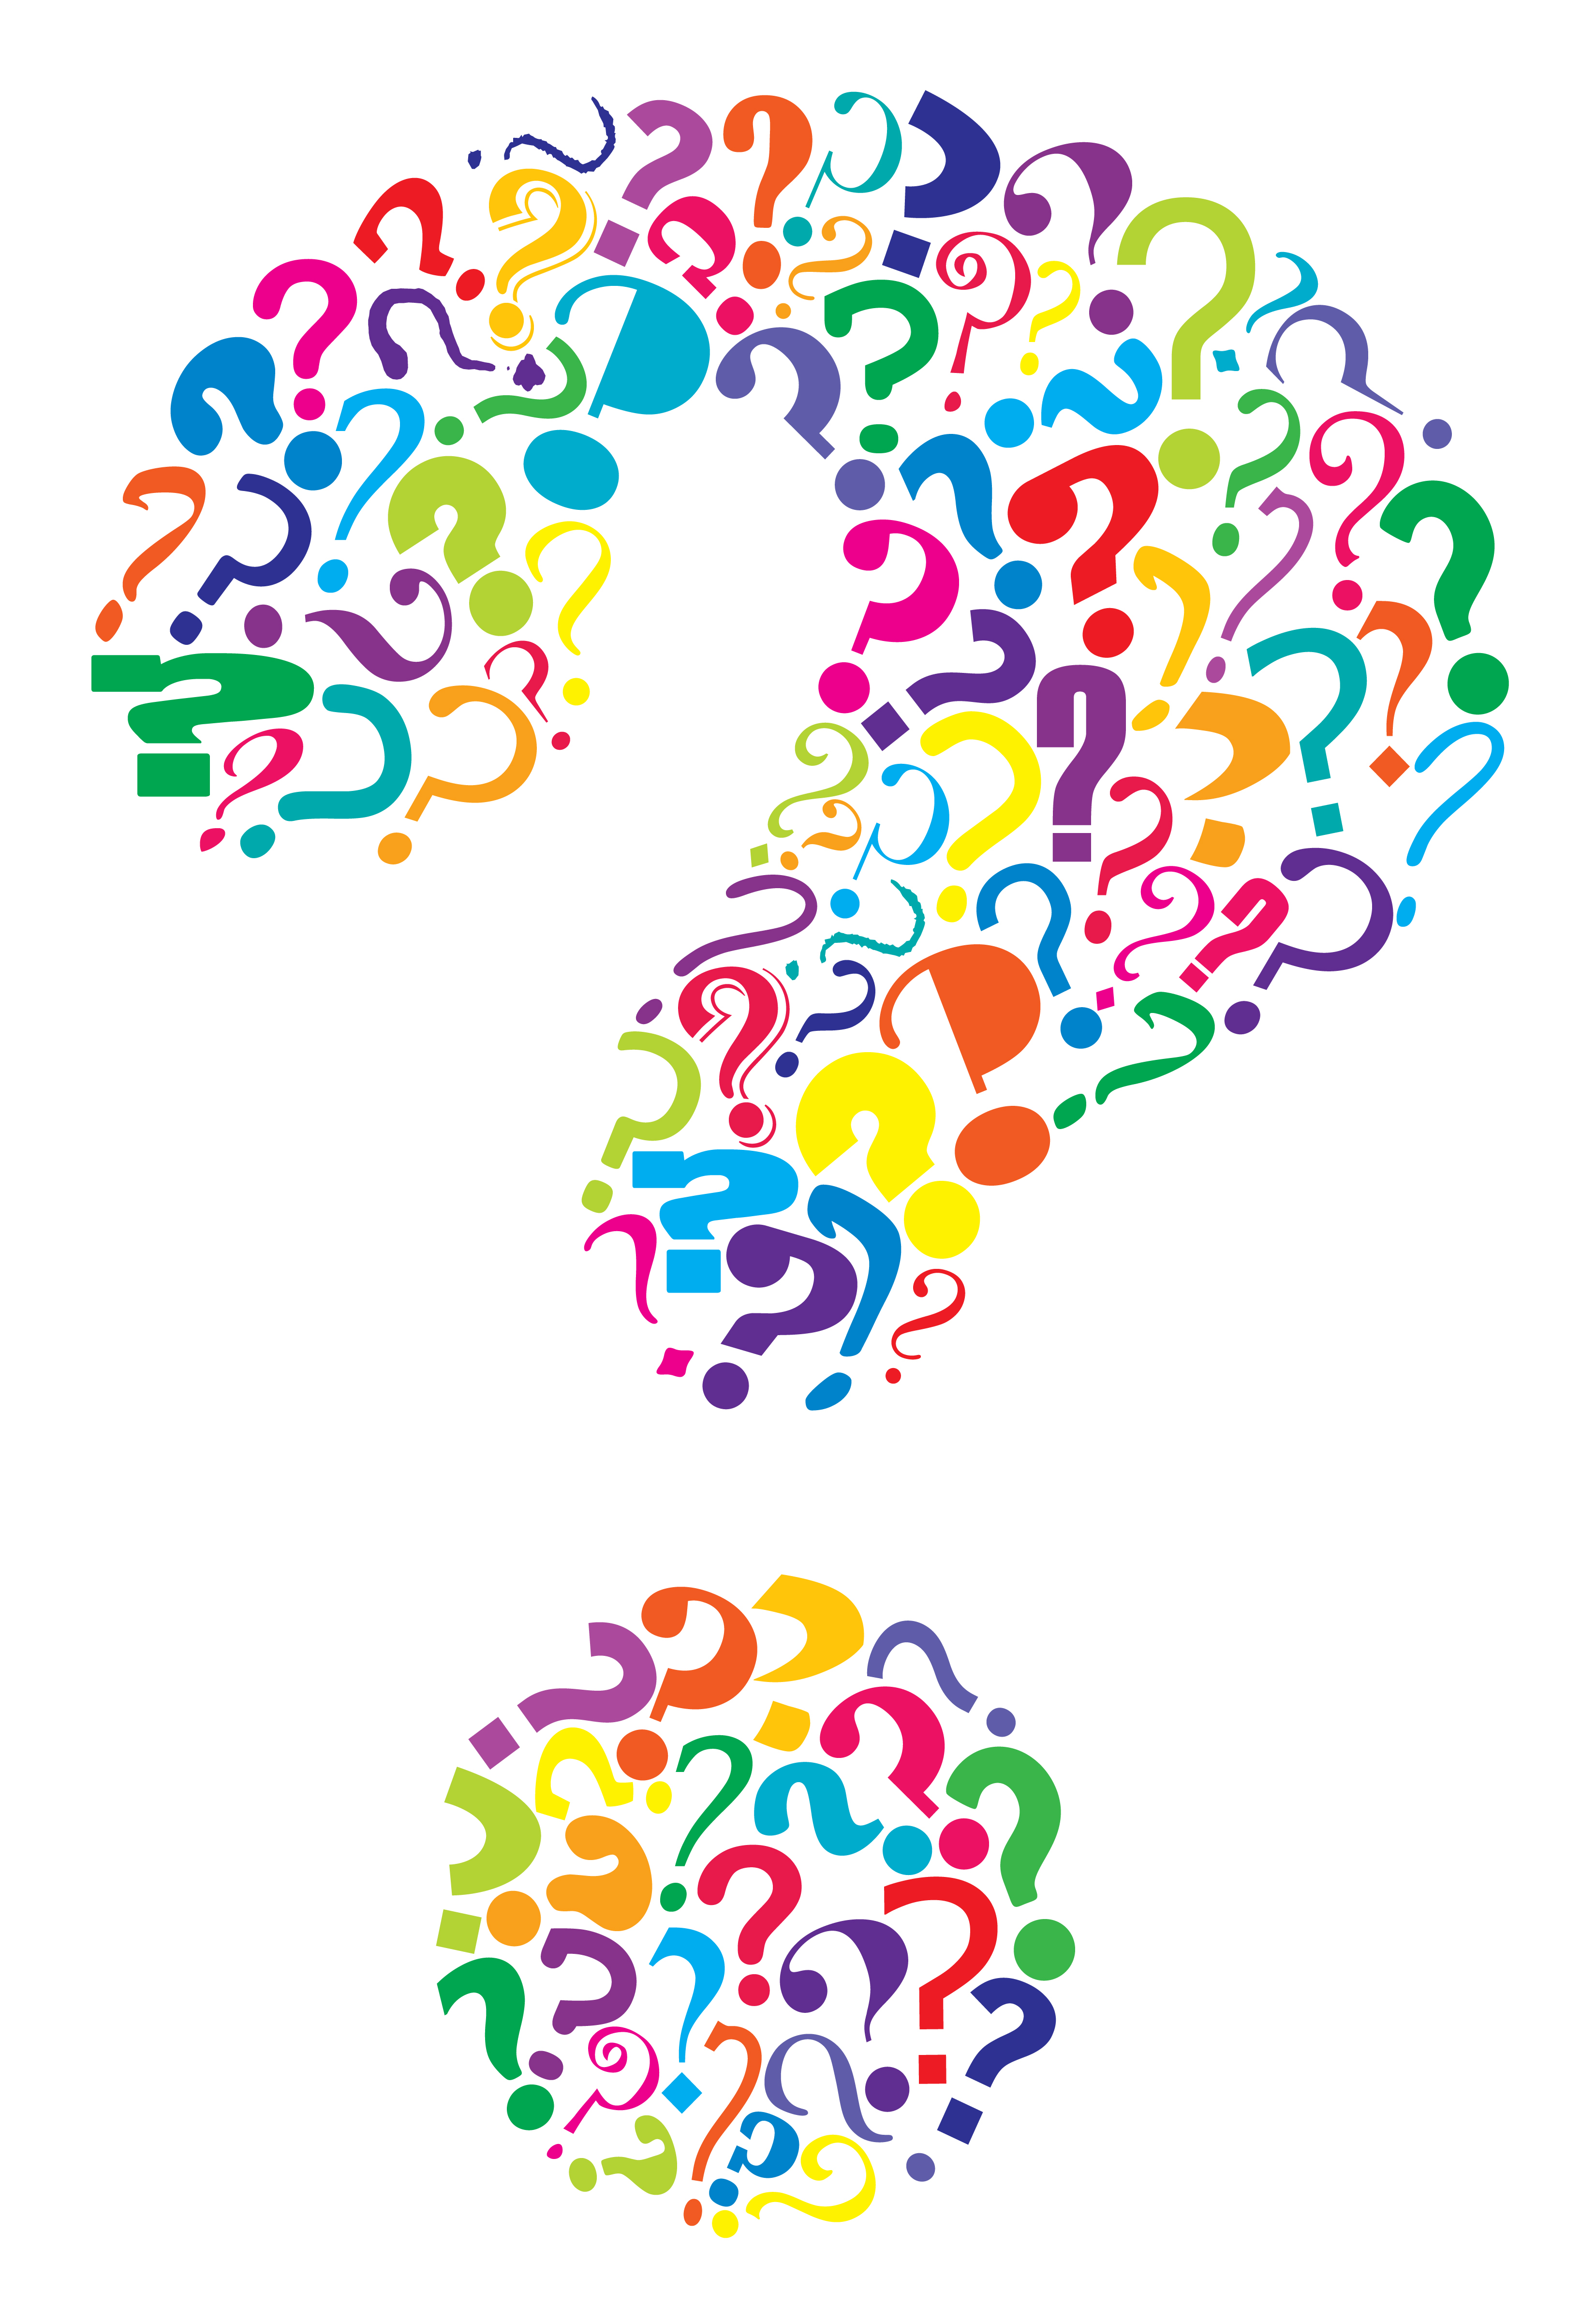 Clipart of question mark.